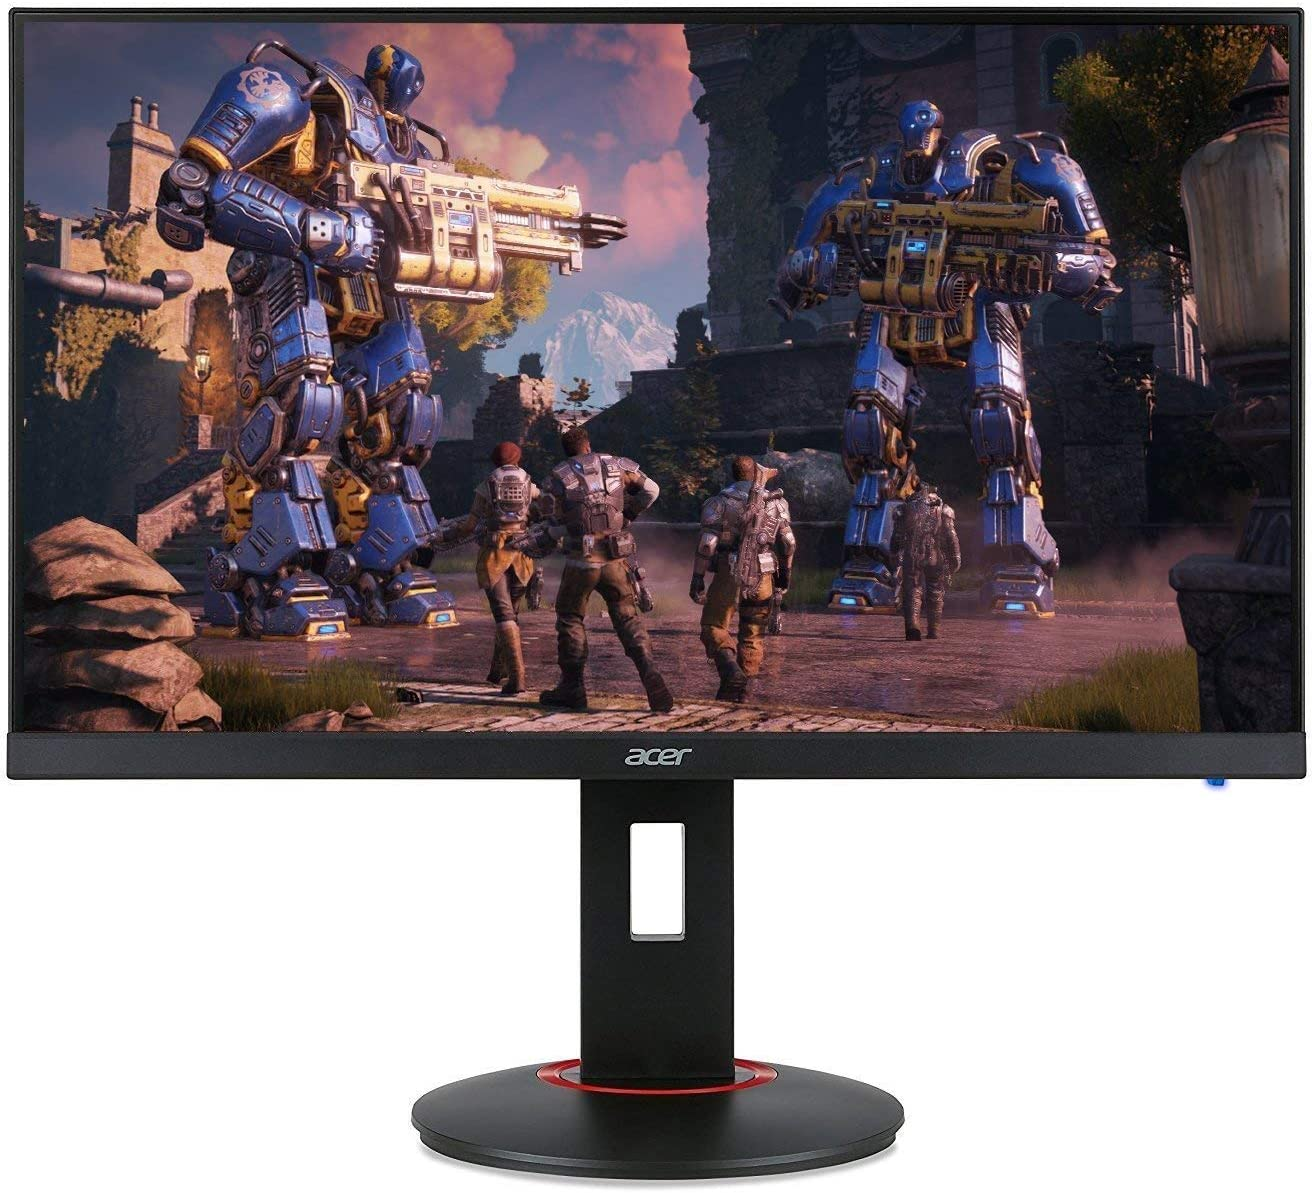 """Acer XF270H Bbmiiprx 27"""" Full HD (1920 x 1080) Zero Frame TN Gaming Monitor with AMD FREESYNC Technology - 1ms 